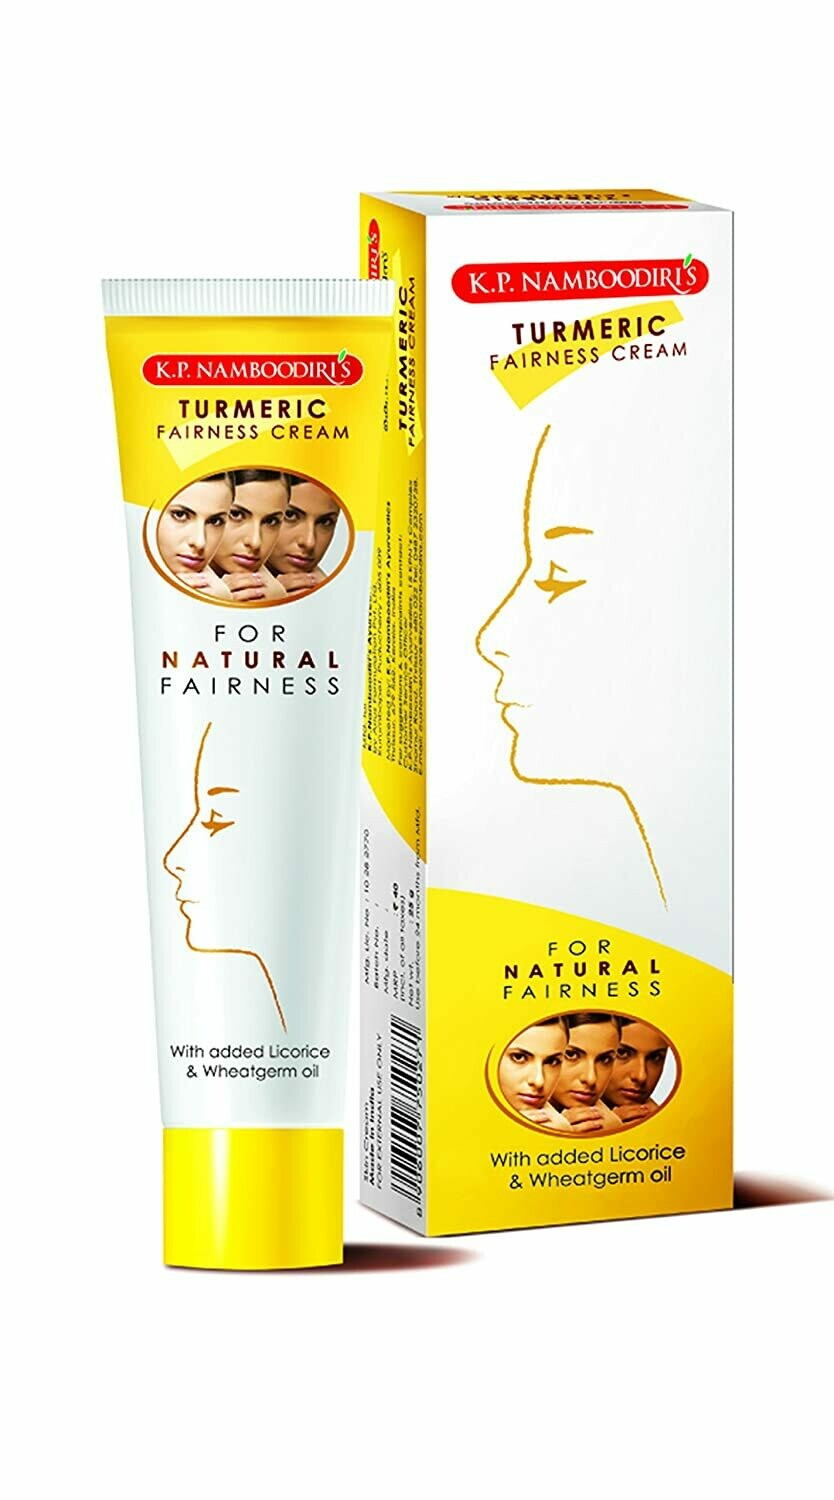 K.P. Namboodiri's Turmeric Fairness Cream 25g